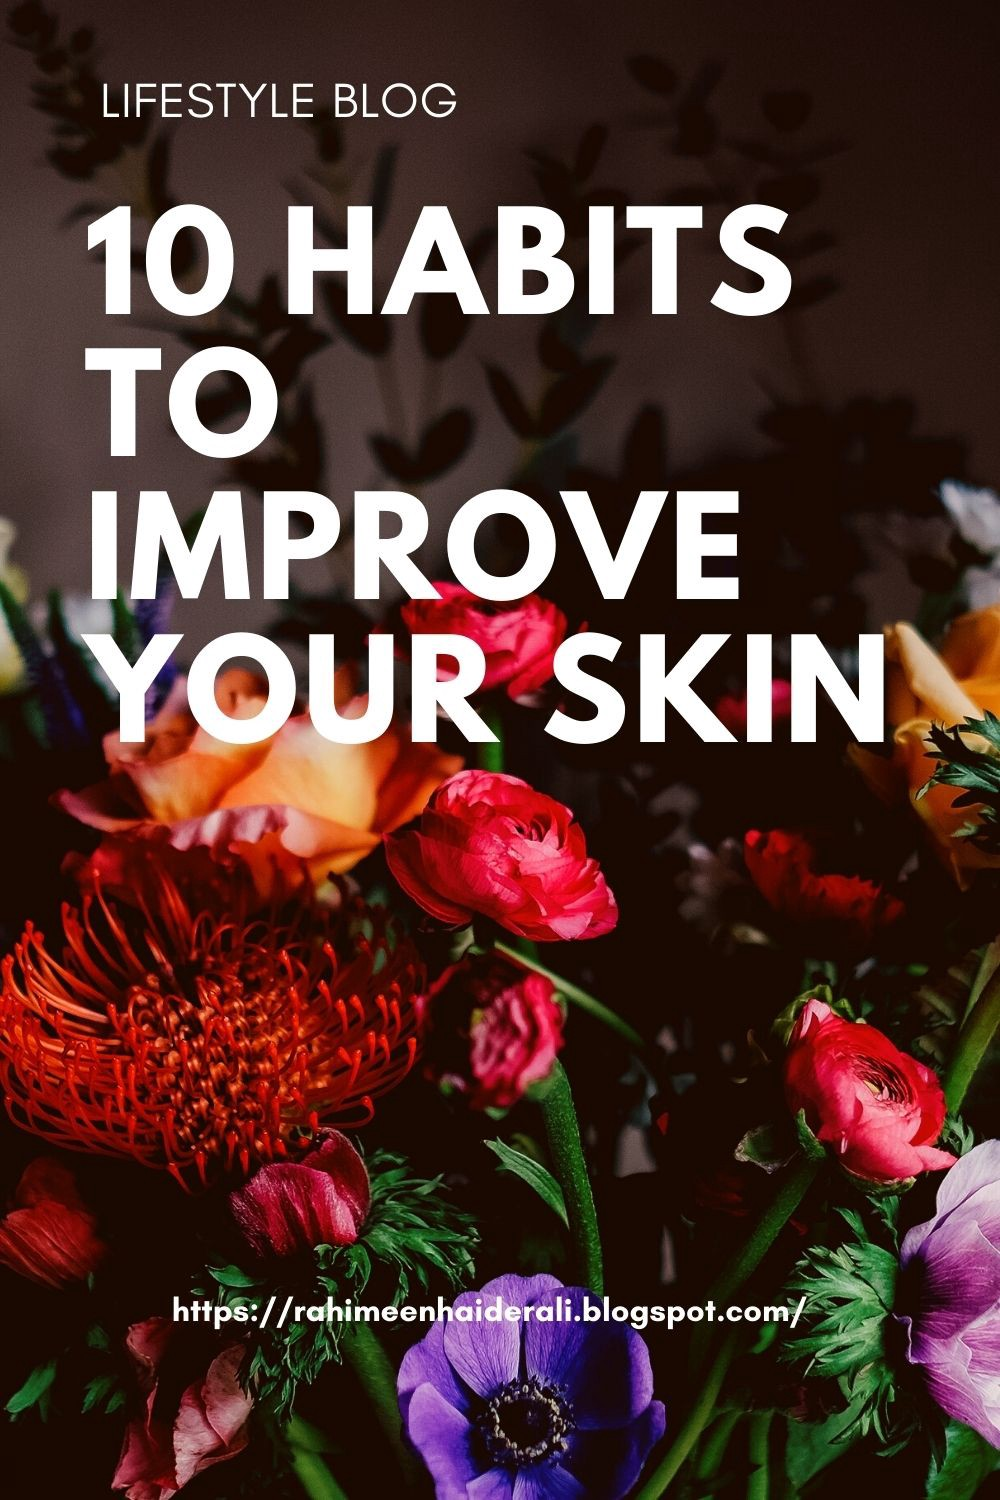 10 HABITS TO IMPROVE YOUR SKIN